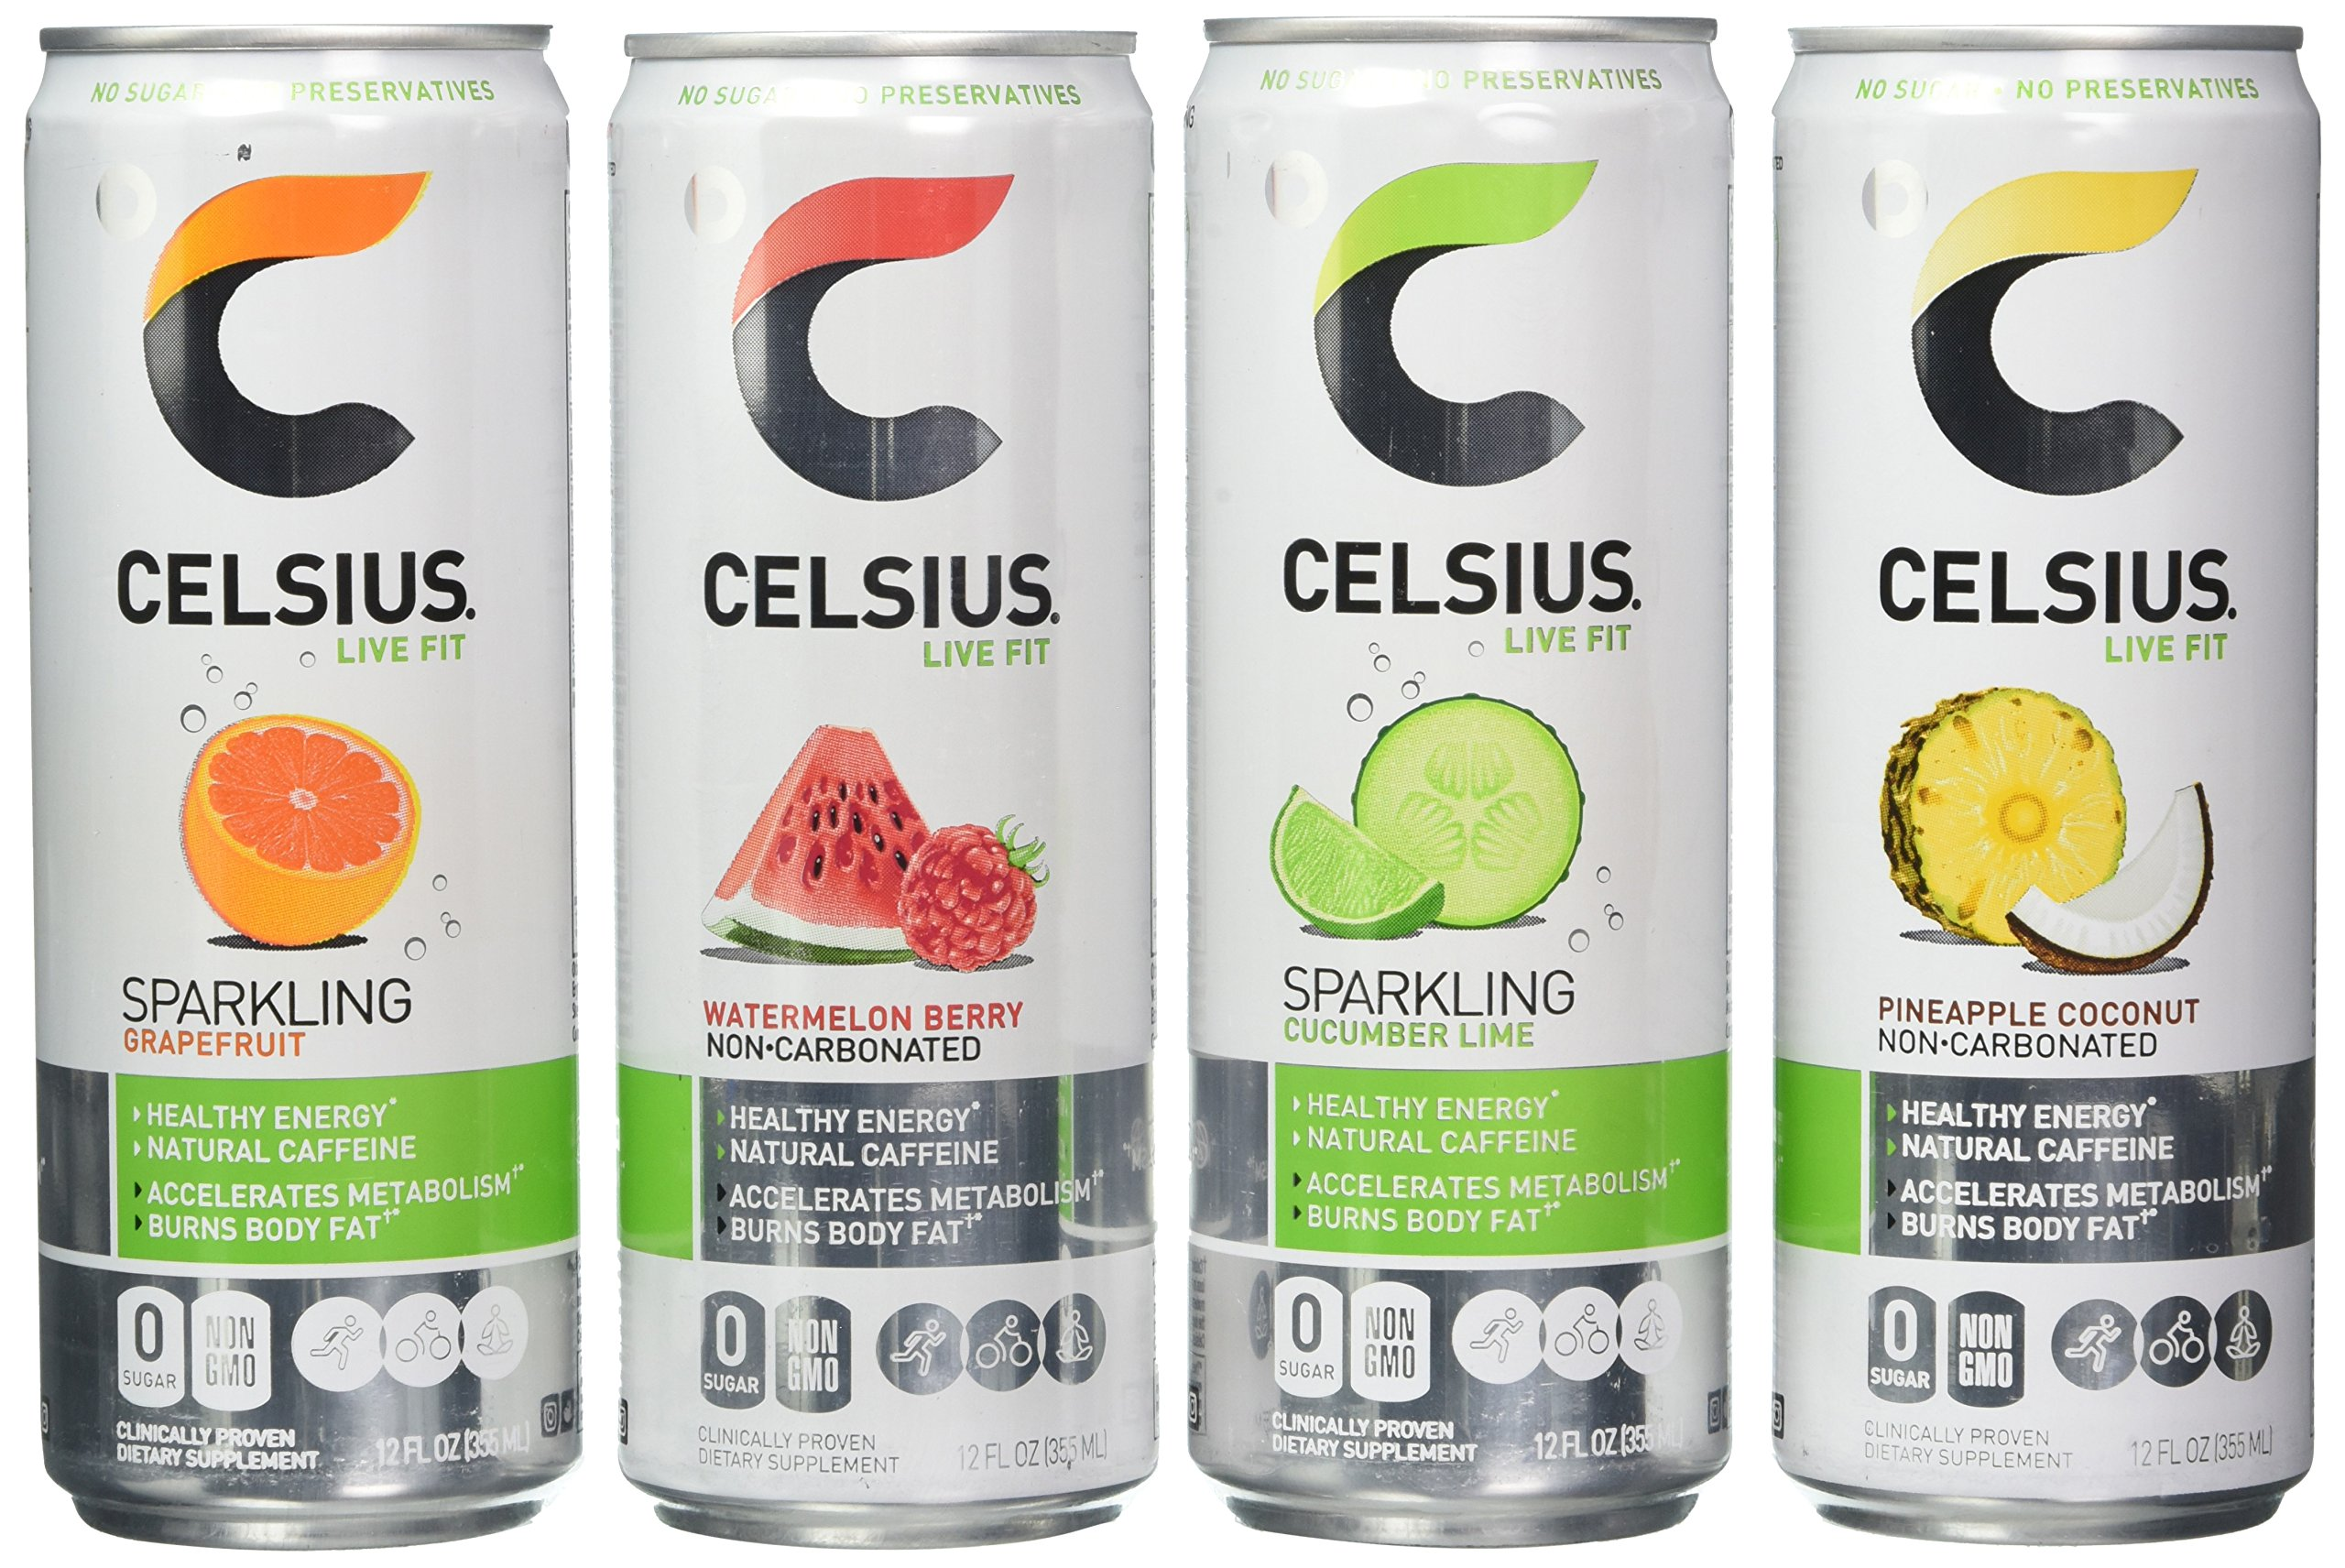 Celsius Live Fit Natural Fitness & Energy Drink 12/12oz Cans (Variety Pack)